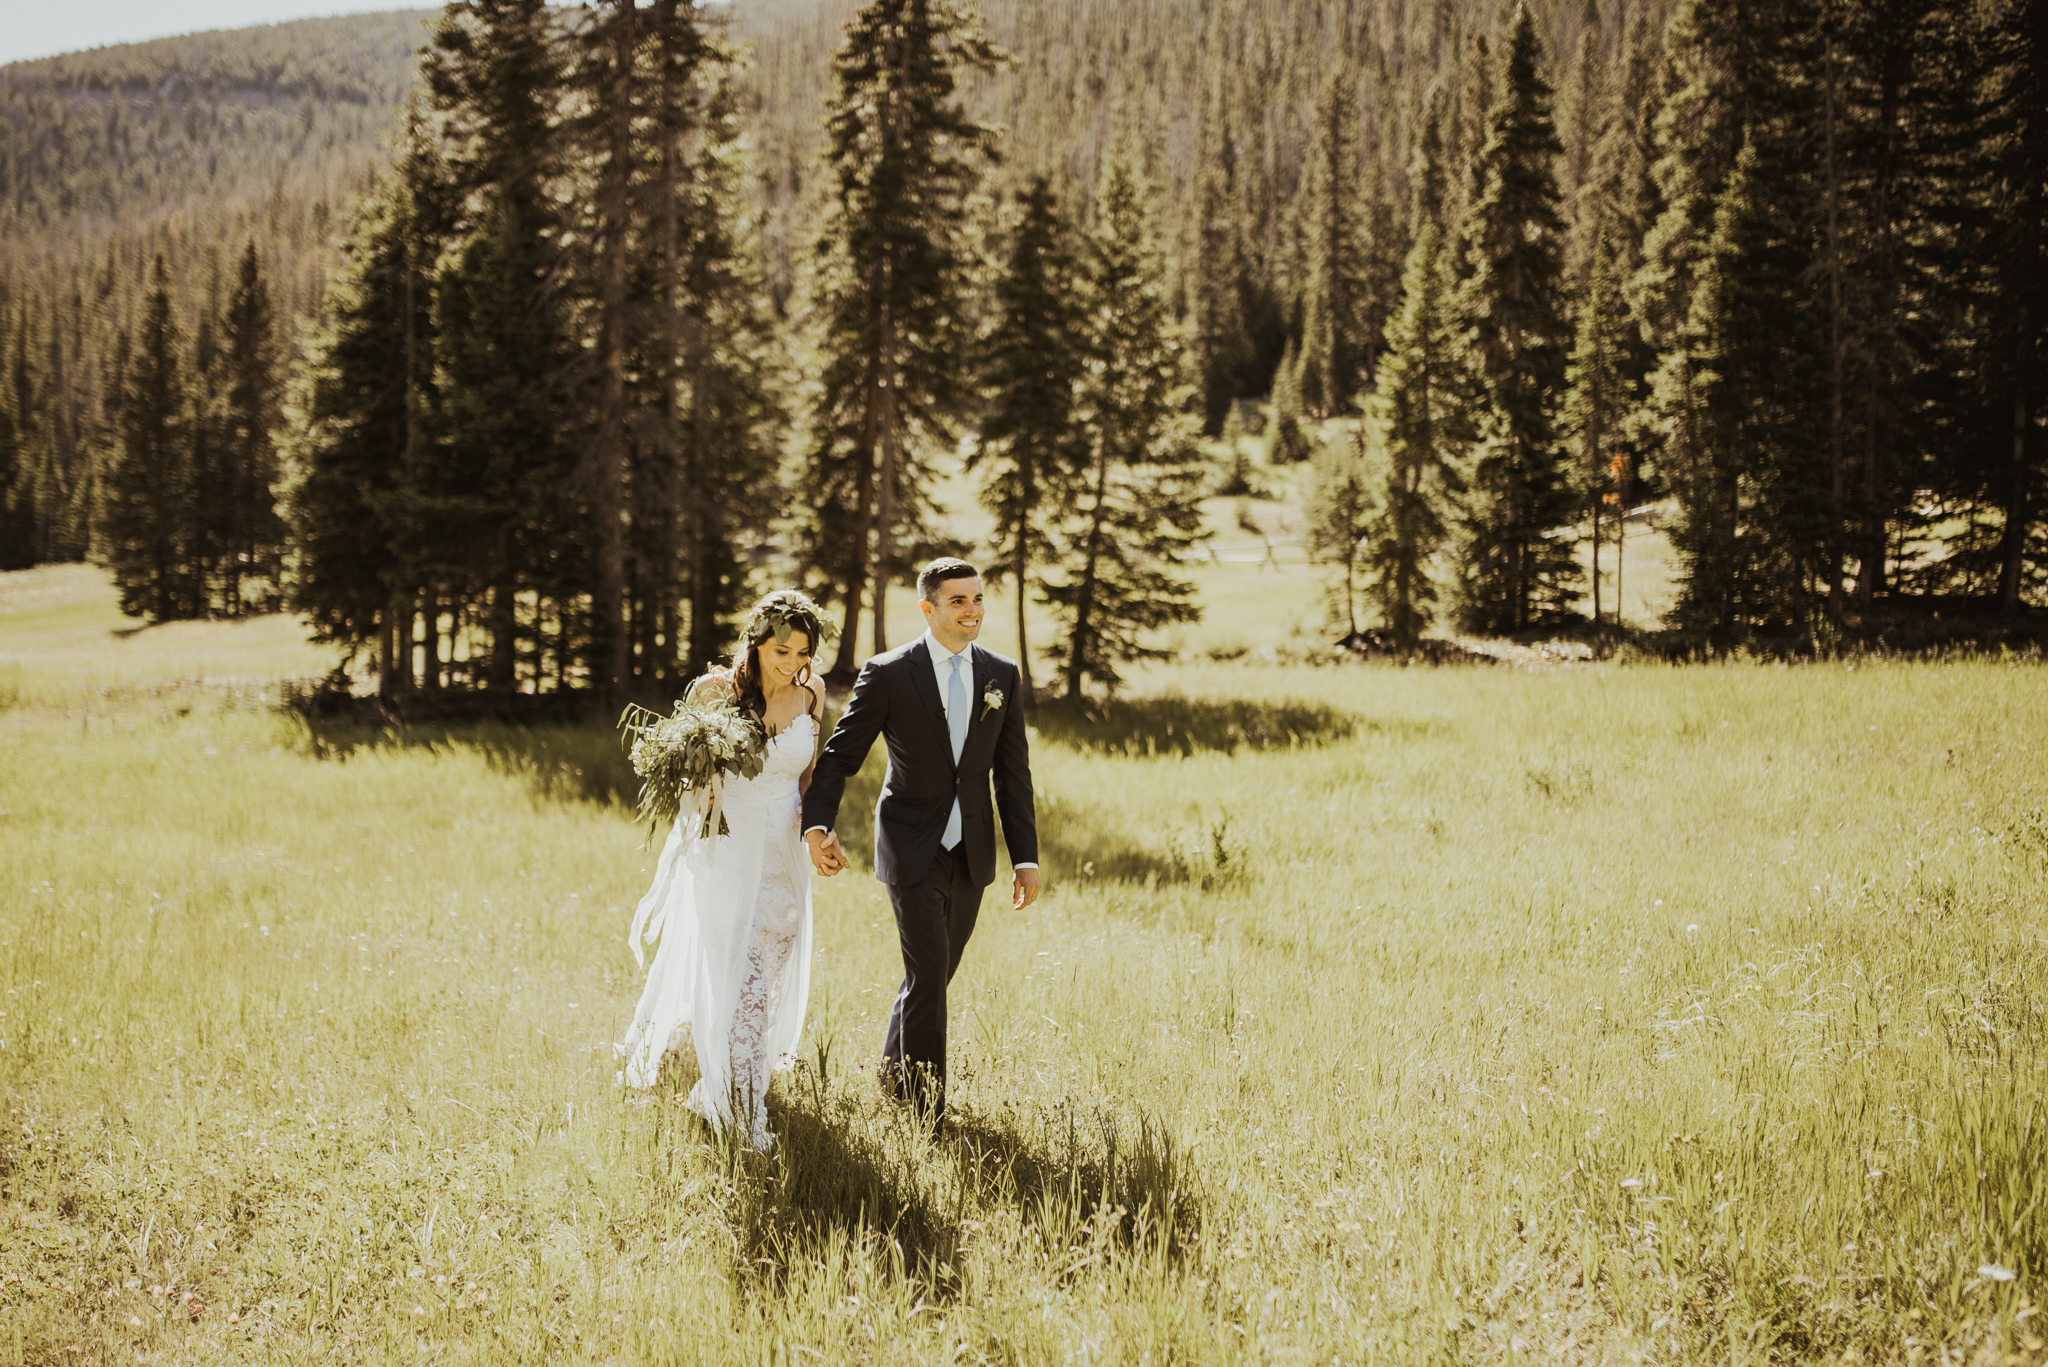 ©Isaiah + Taylor Photography - Estes National Park Adventure Elopement, Colorado Rockies-50.jpg